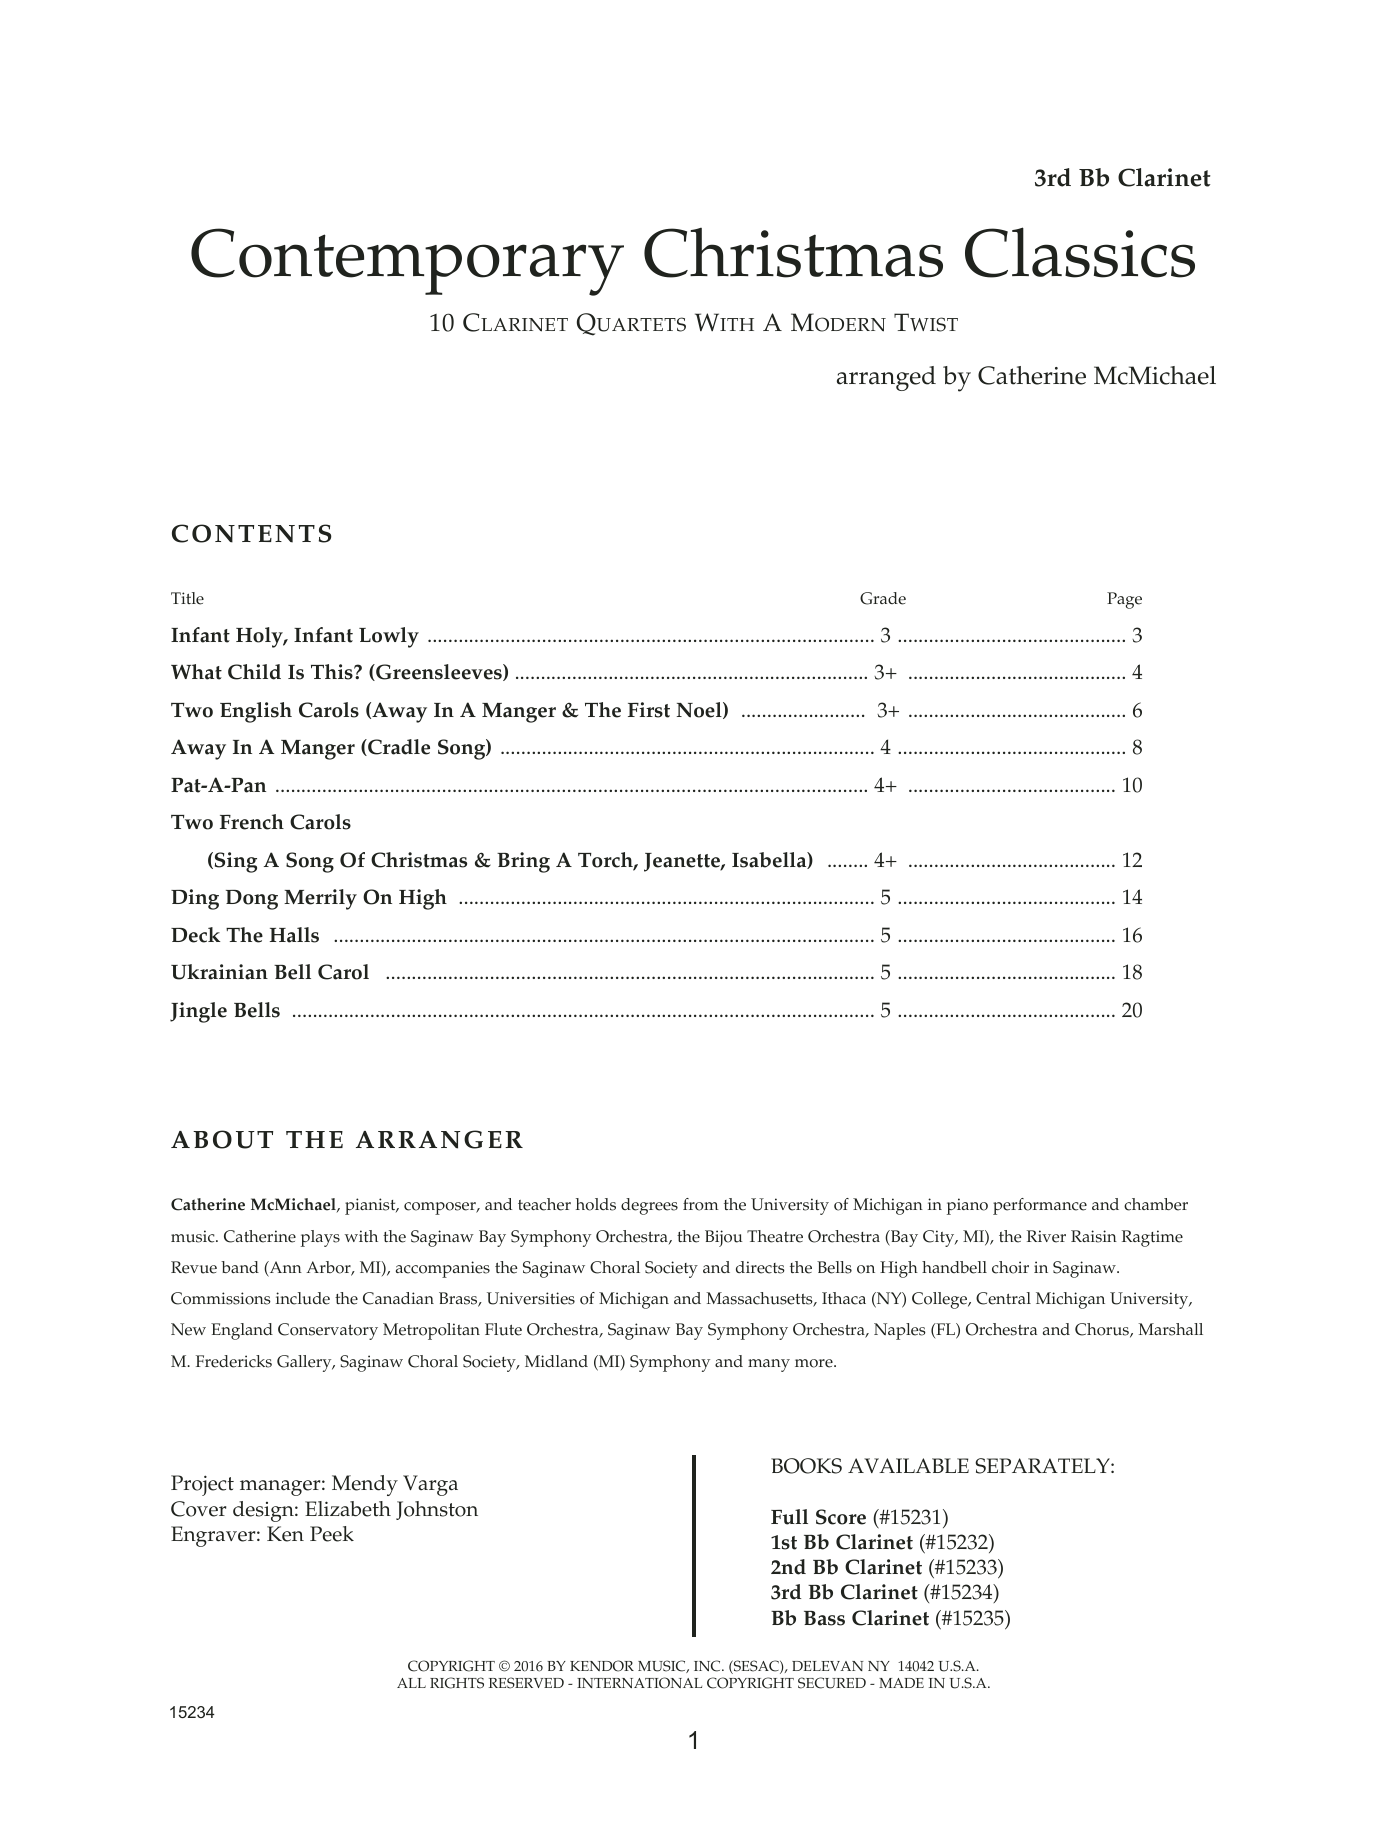 Contemporary Christmas Classics - 3rd Bb Clarinet Partition Digitale